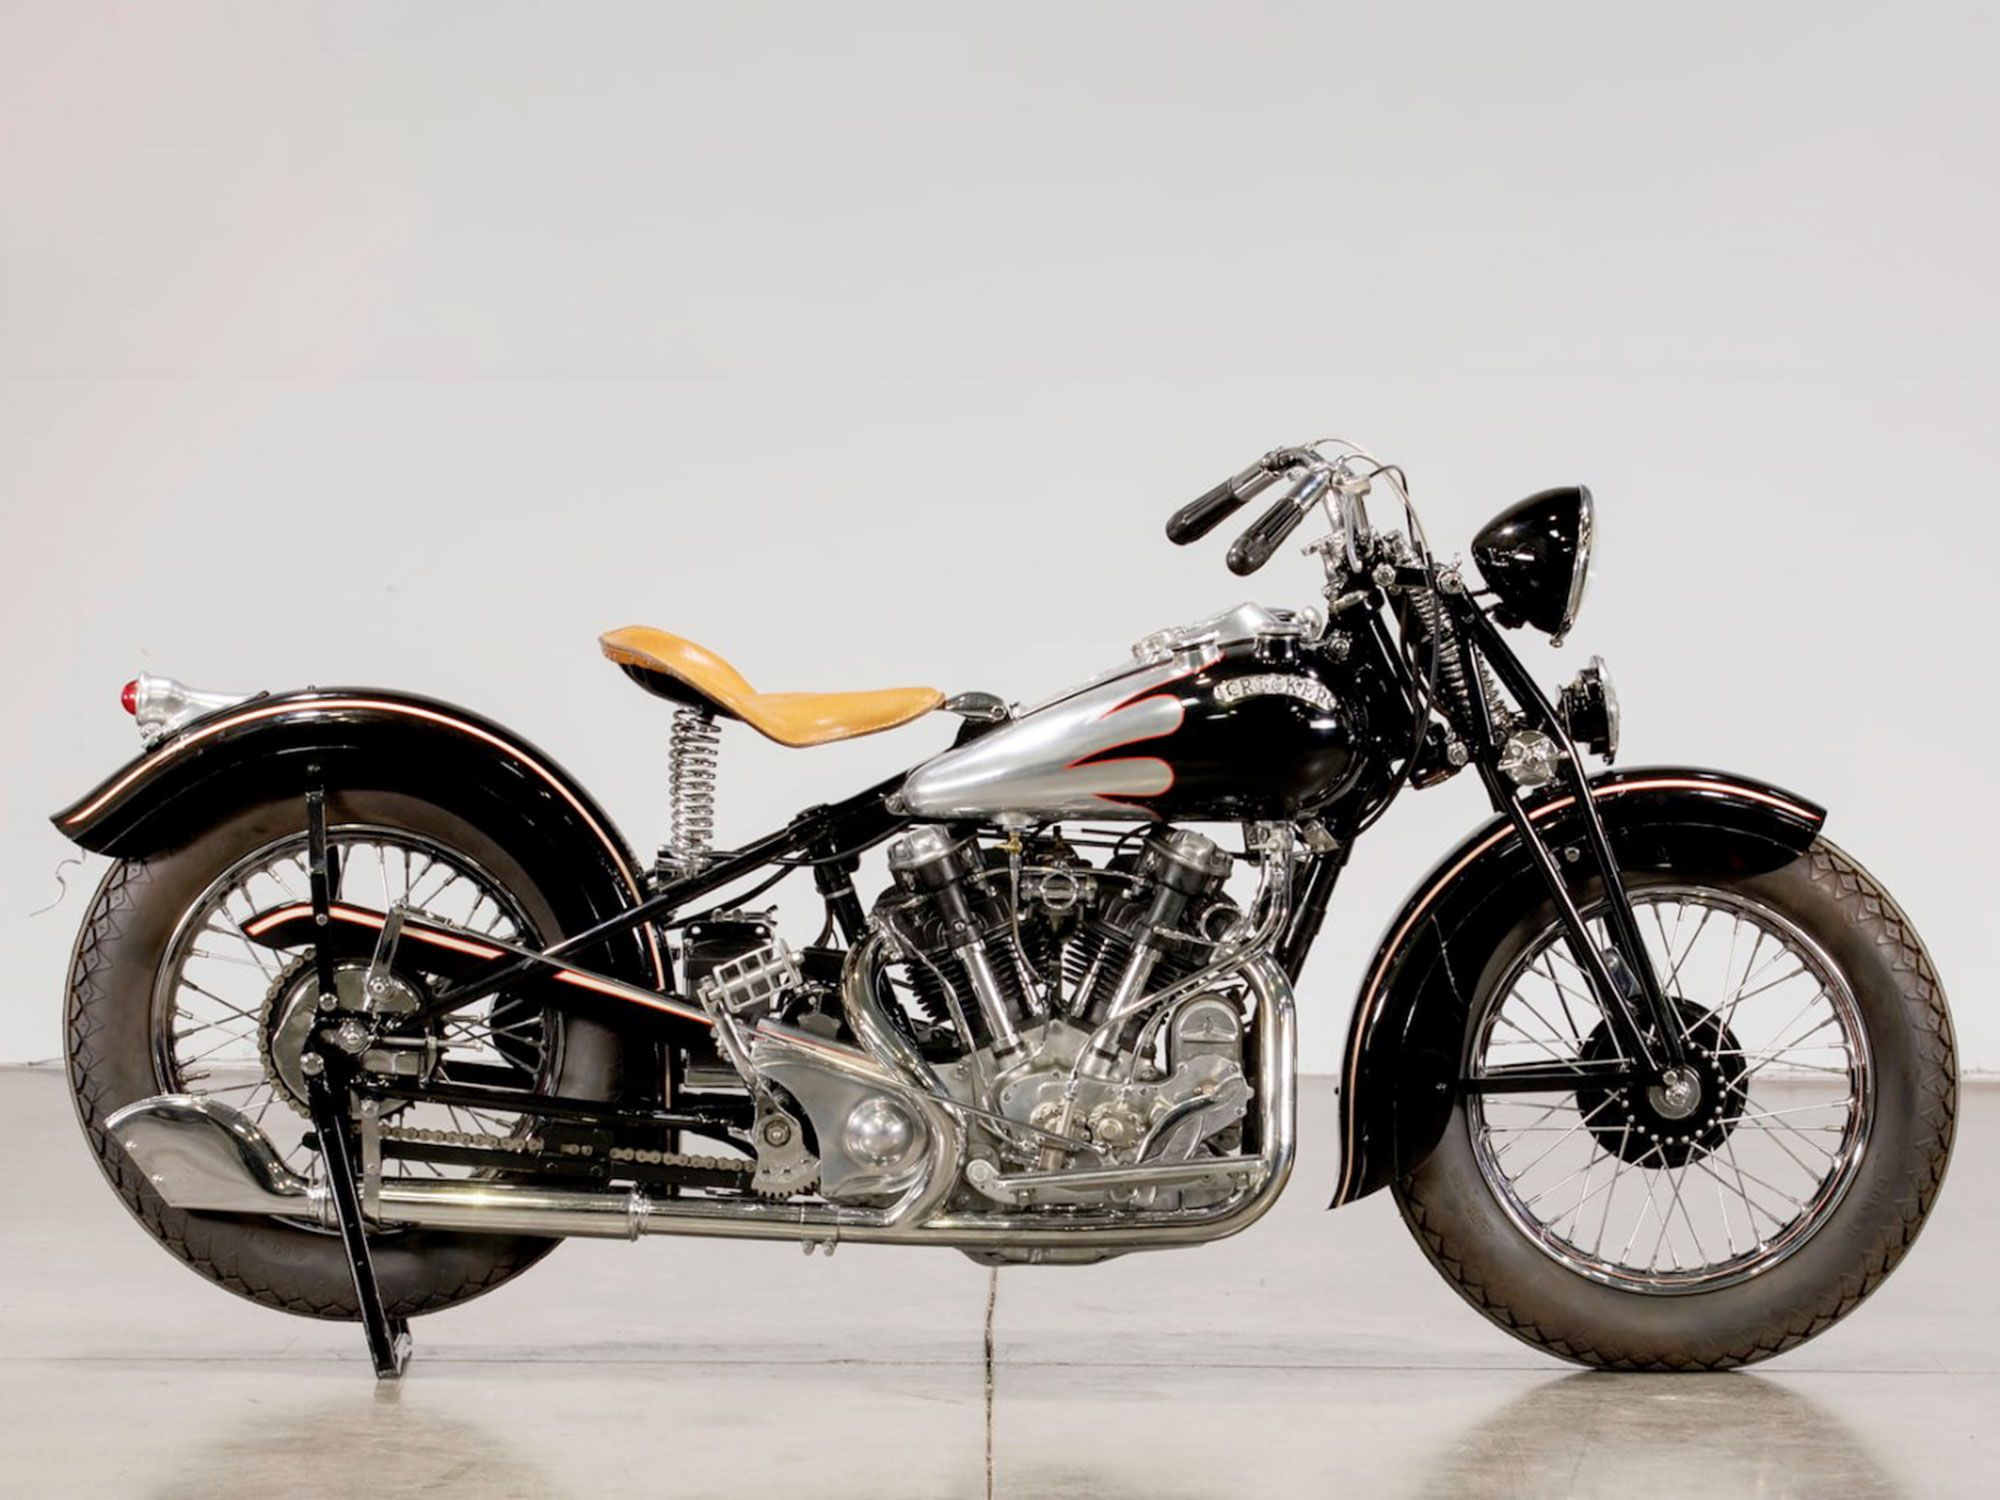 5. Bobber style from the factory, this 1939 Crocker's polished aluminum fuel tanks set the mood.